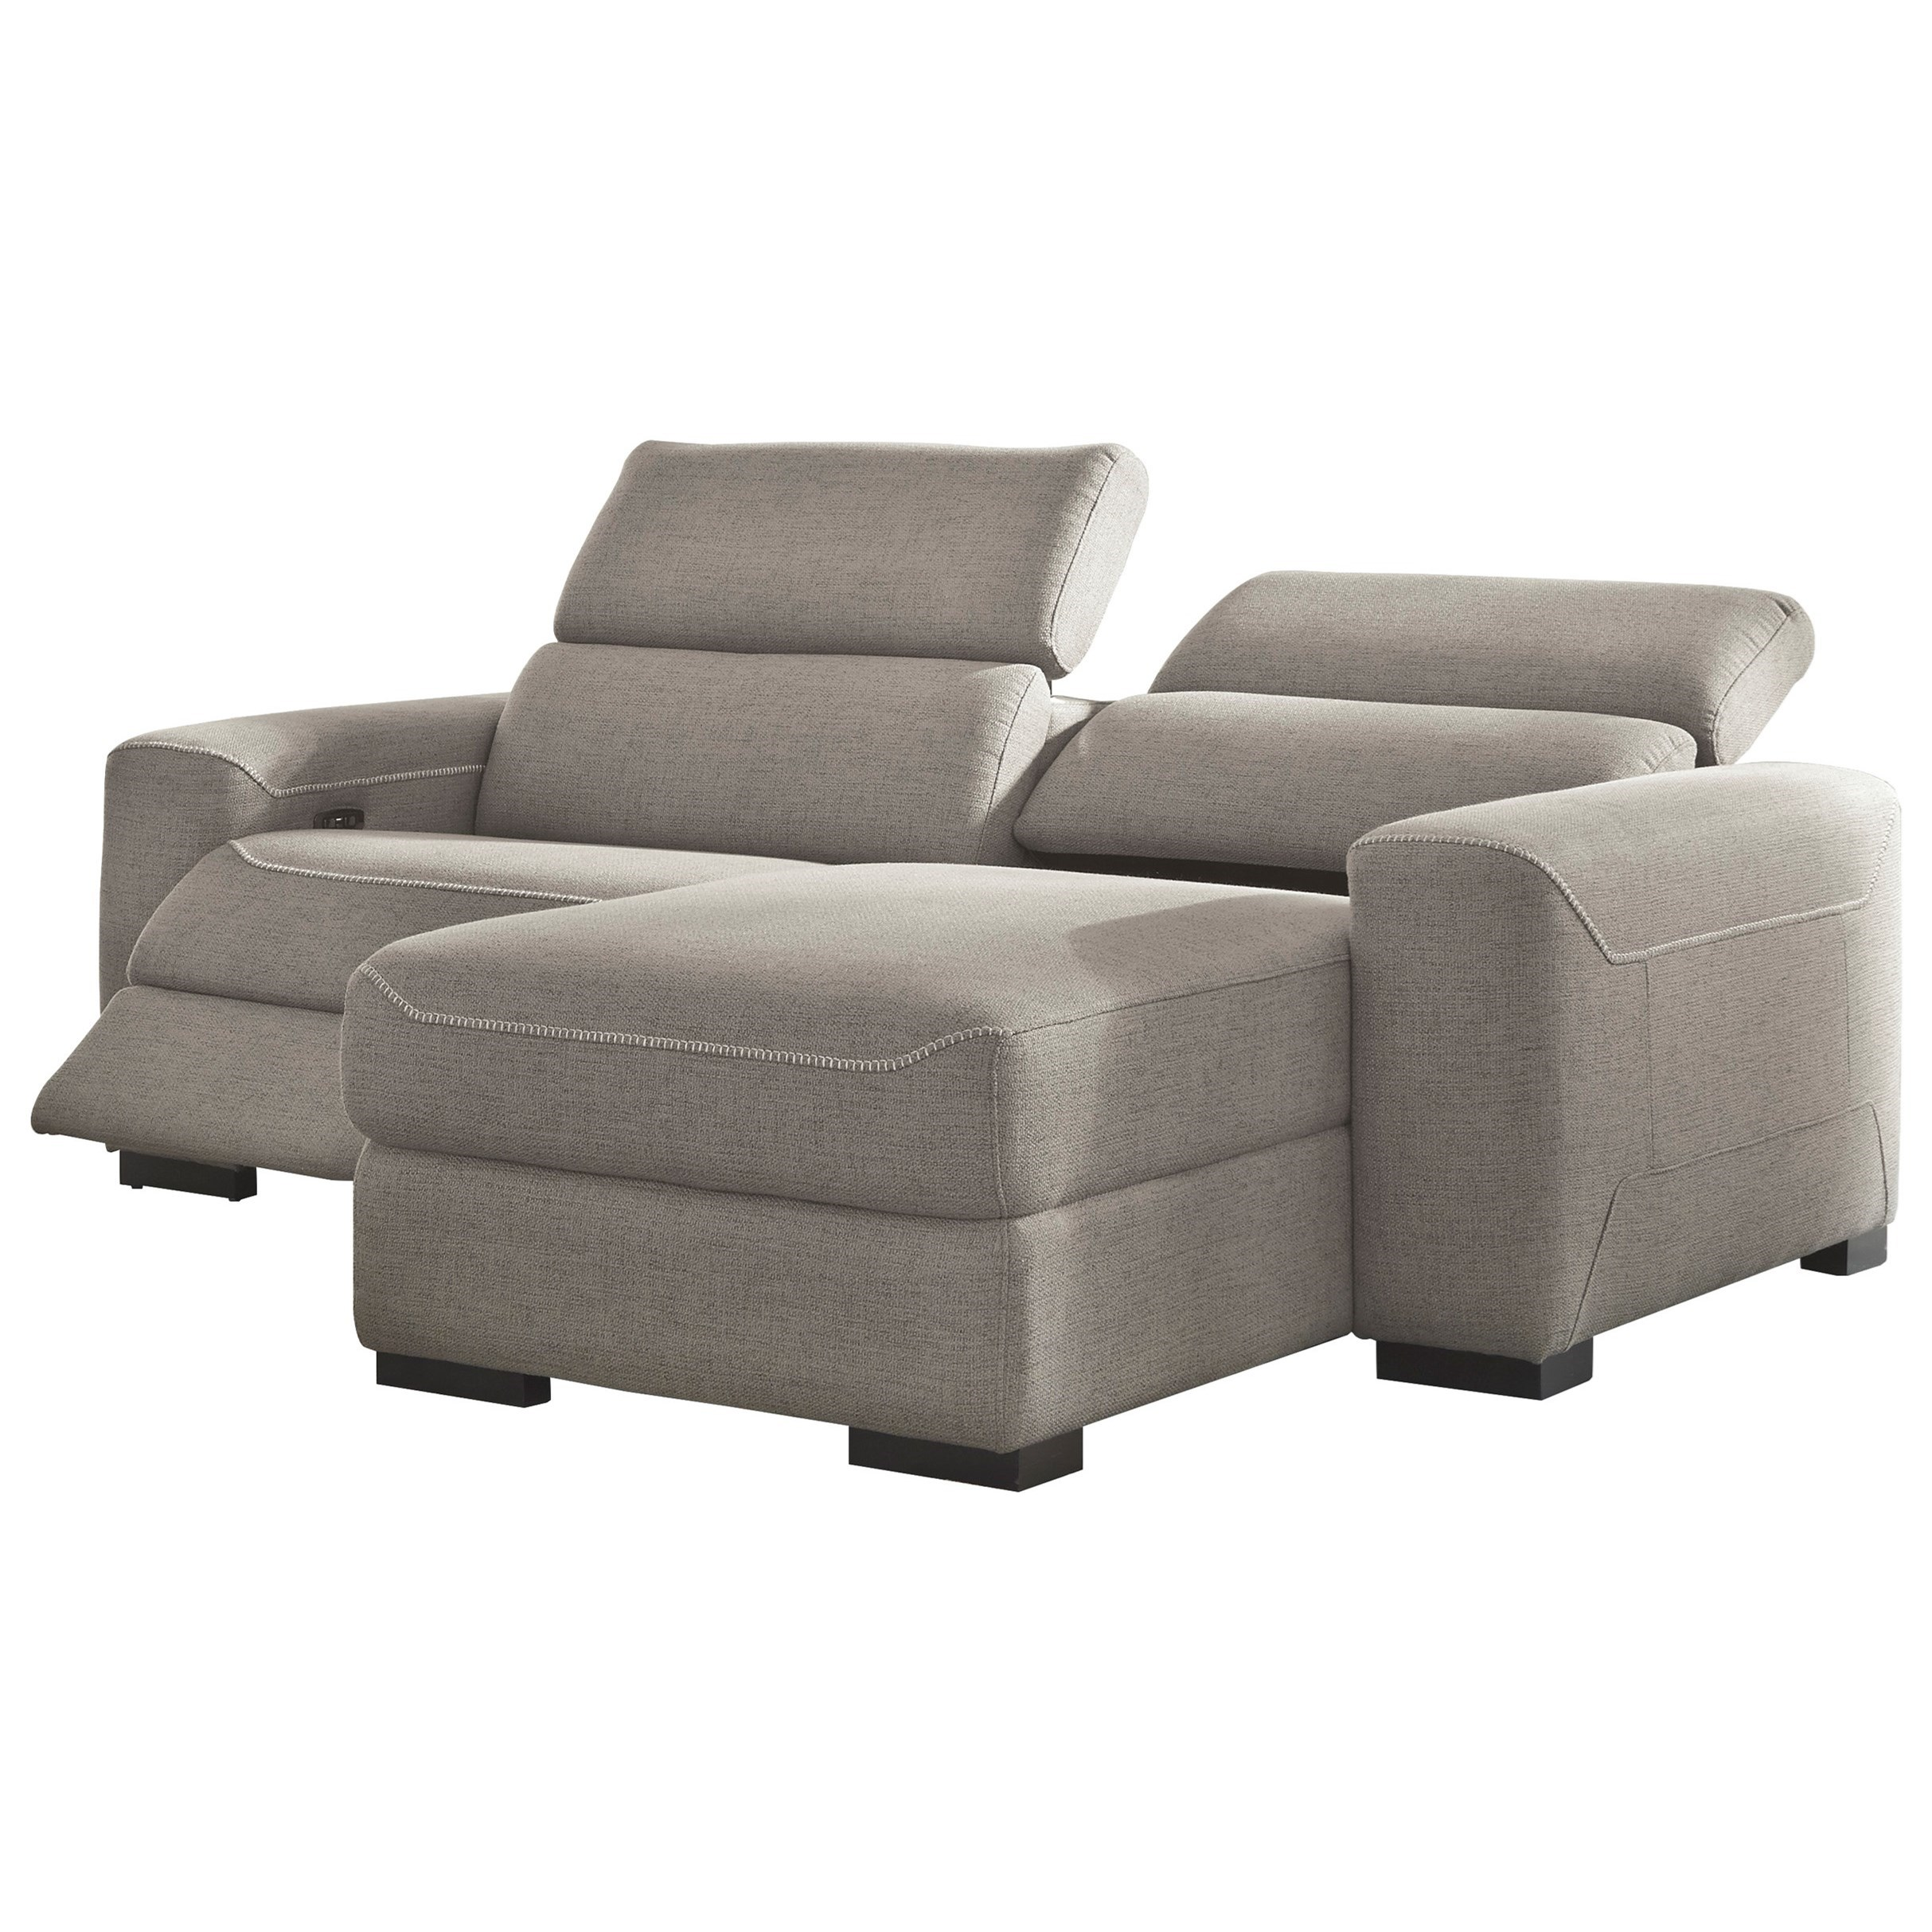 Mabton Power Reclining Sectional by Signature Design by Ashley at HomeWorld Furniture